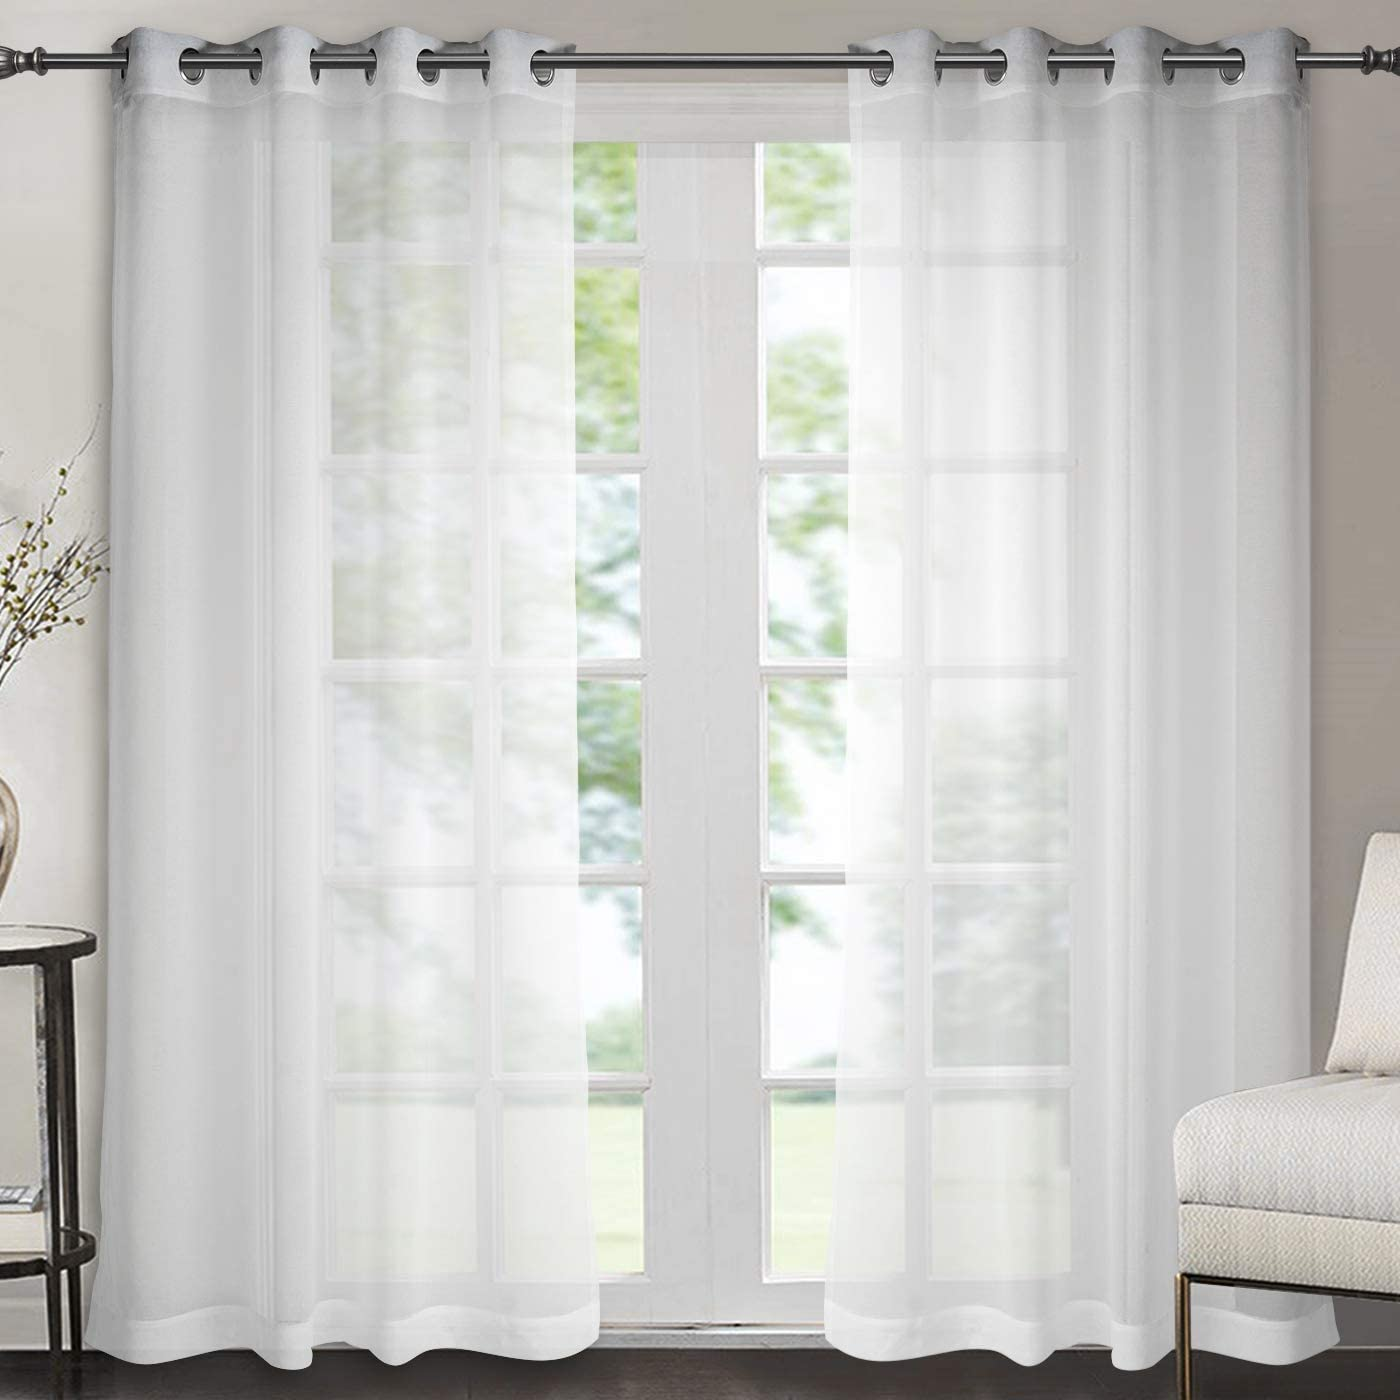 Singinglory Eyelet Voile Curtains Set of 2 with Tiebacks,White Sheer Solid Transparent Muslin Window Drop(White,52X90)